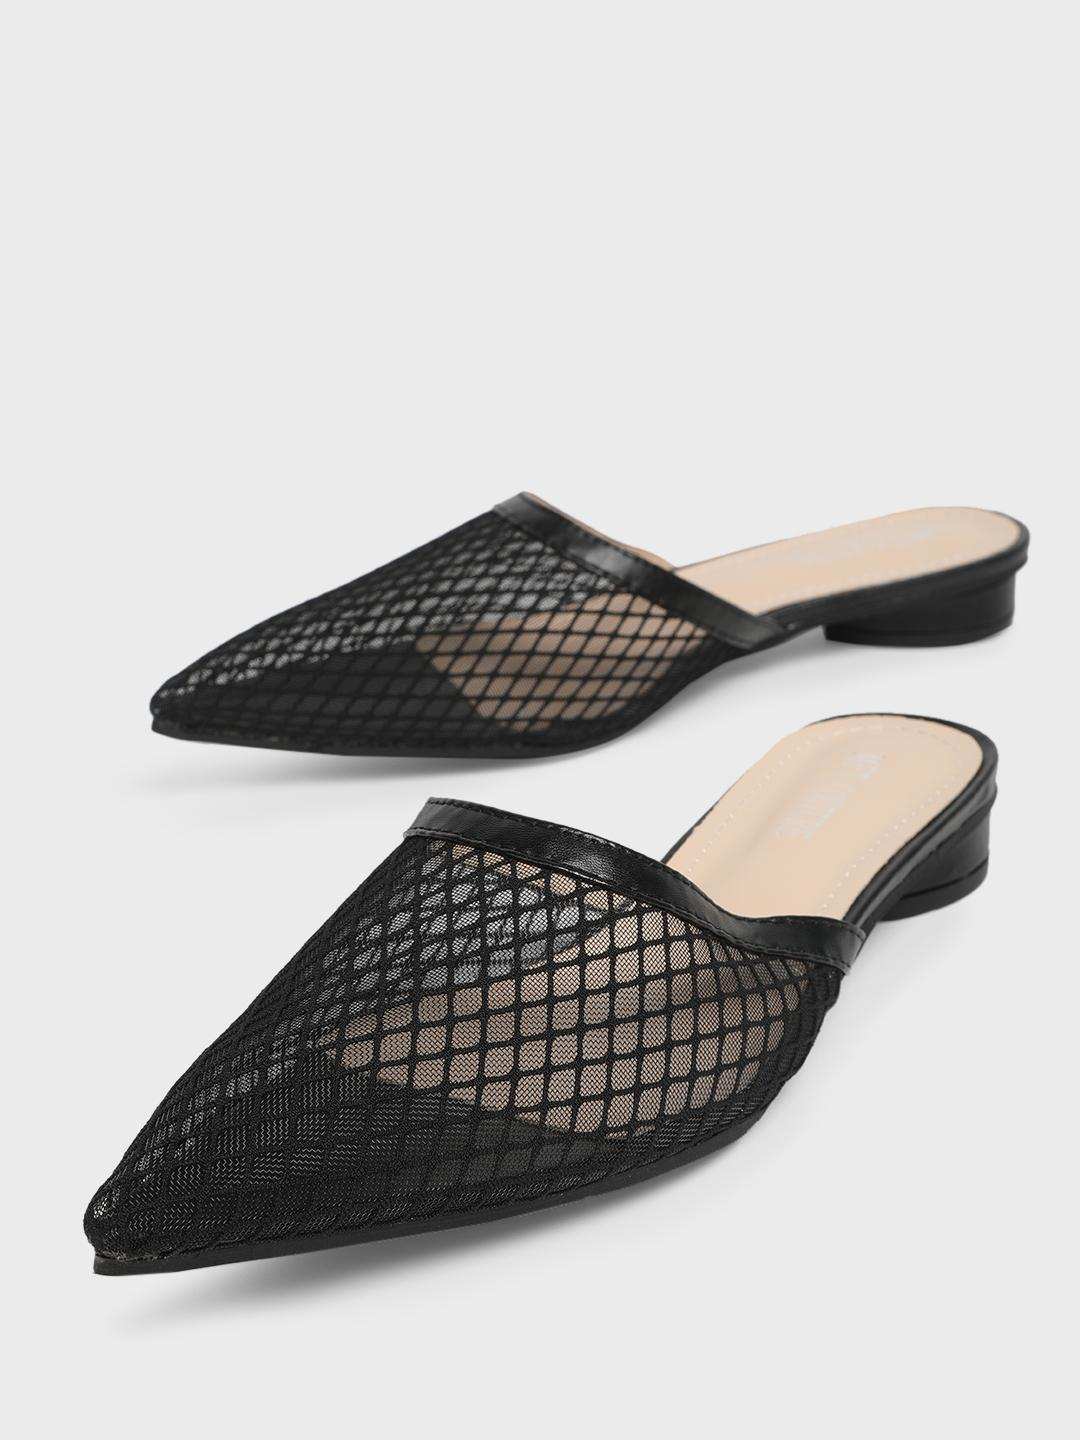 MFT Couture Black MY FOOT COUTURE Mesh Upper Flat Mules 1